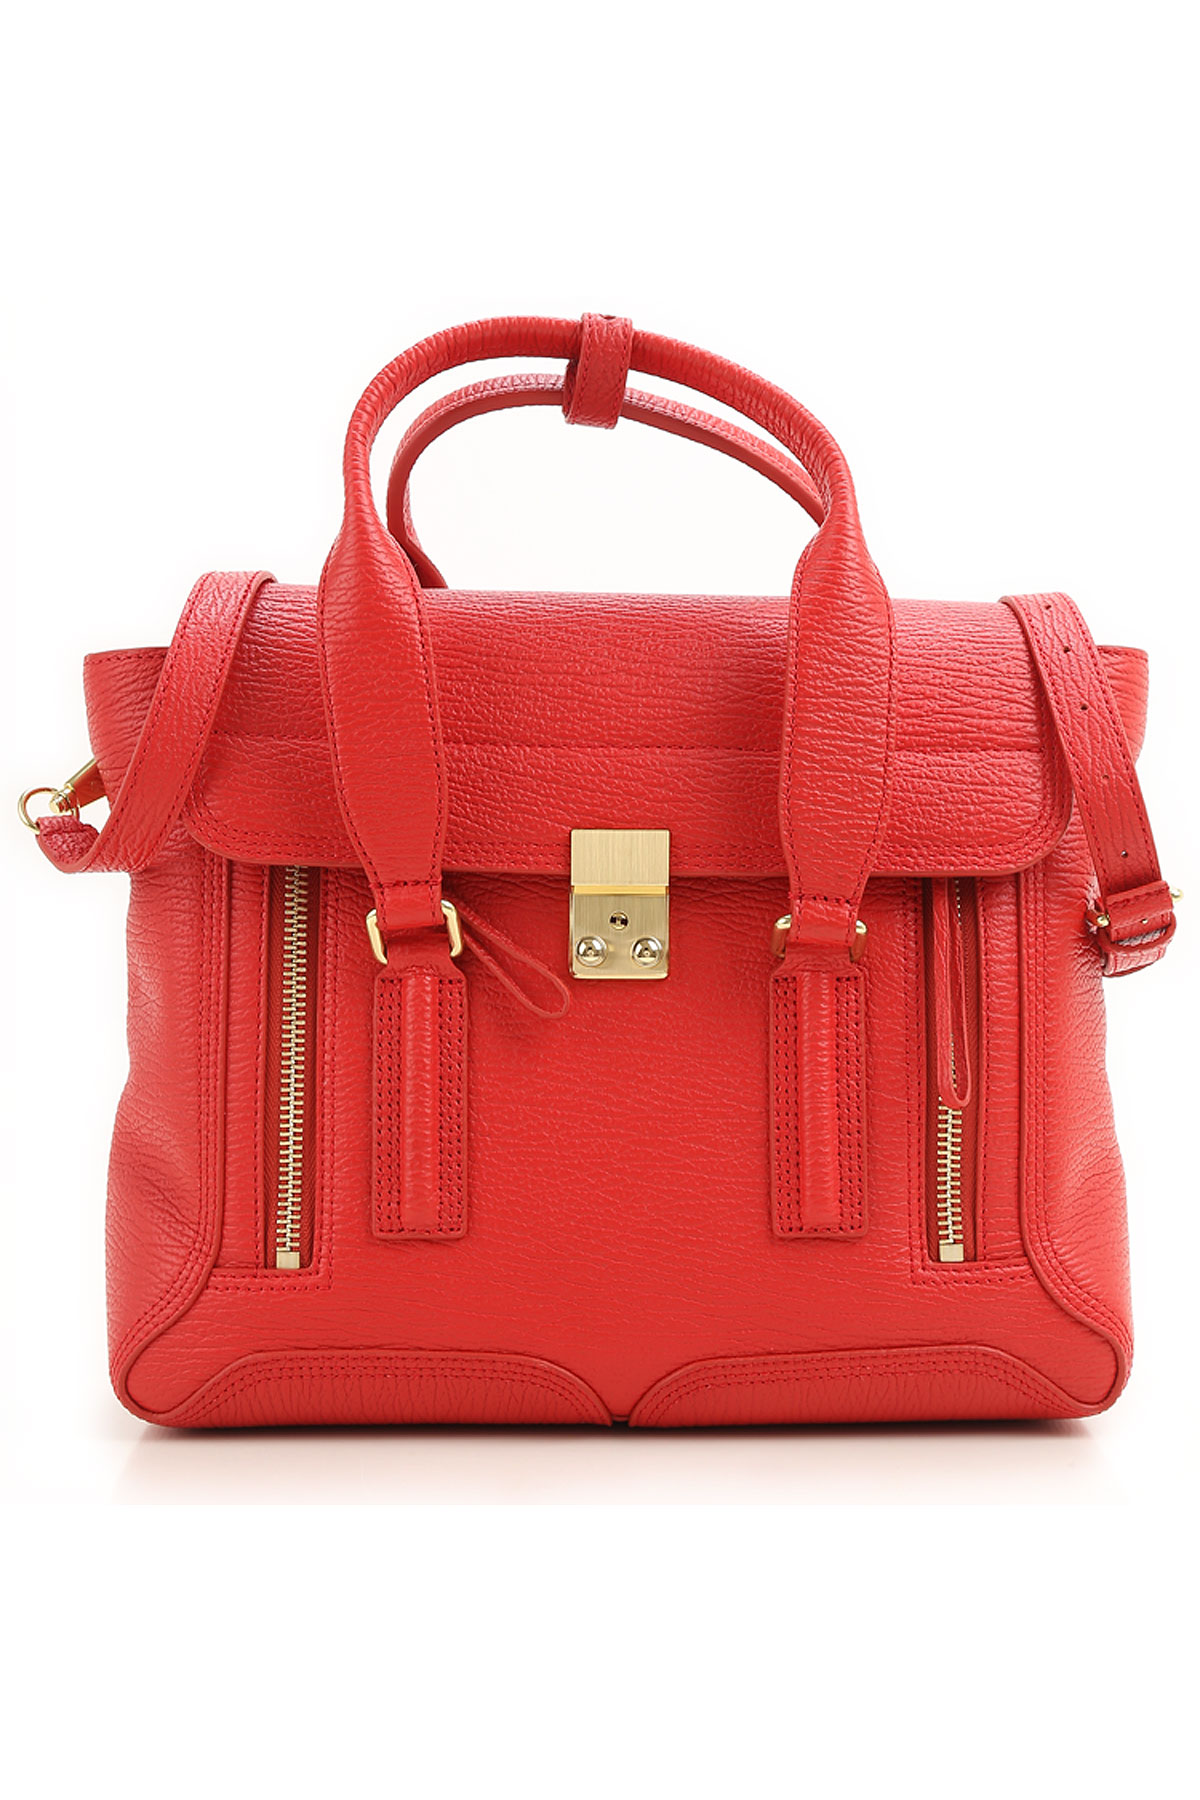 3.1 PHILLIP LIM Tote Bag On Sale, Red, Leather, 2017